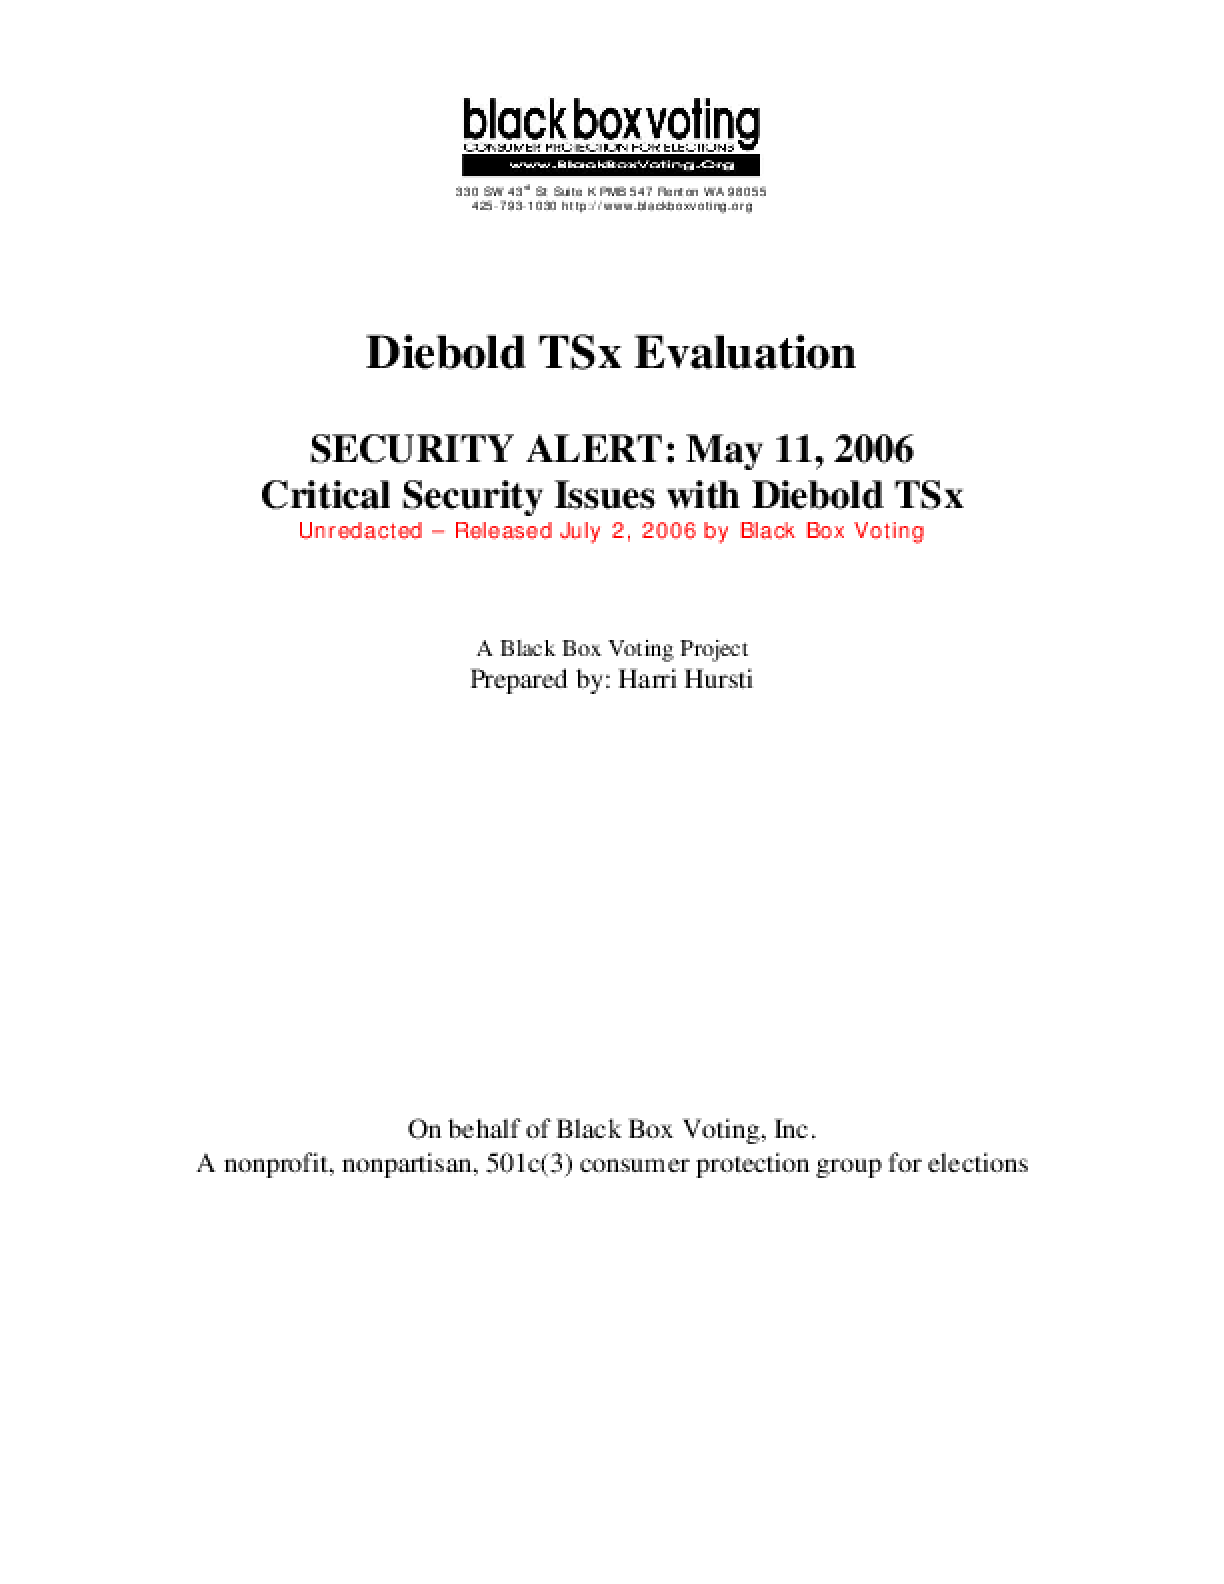 Diebold TSx Evaluation Security Alert: May 11, 2006 Critical Security Issues with Diebold TSx